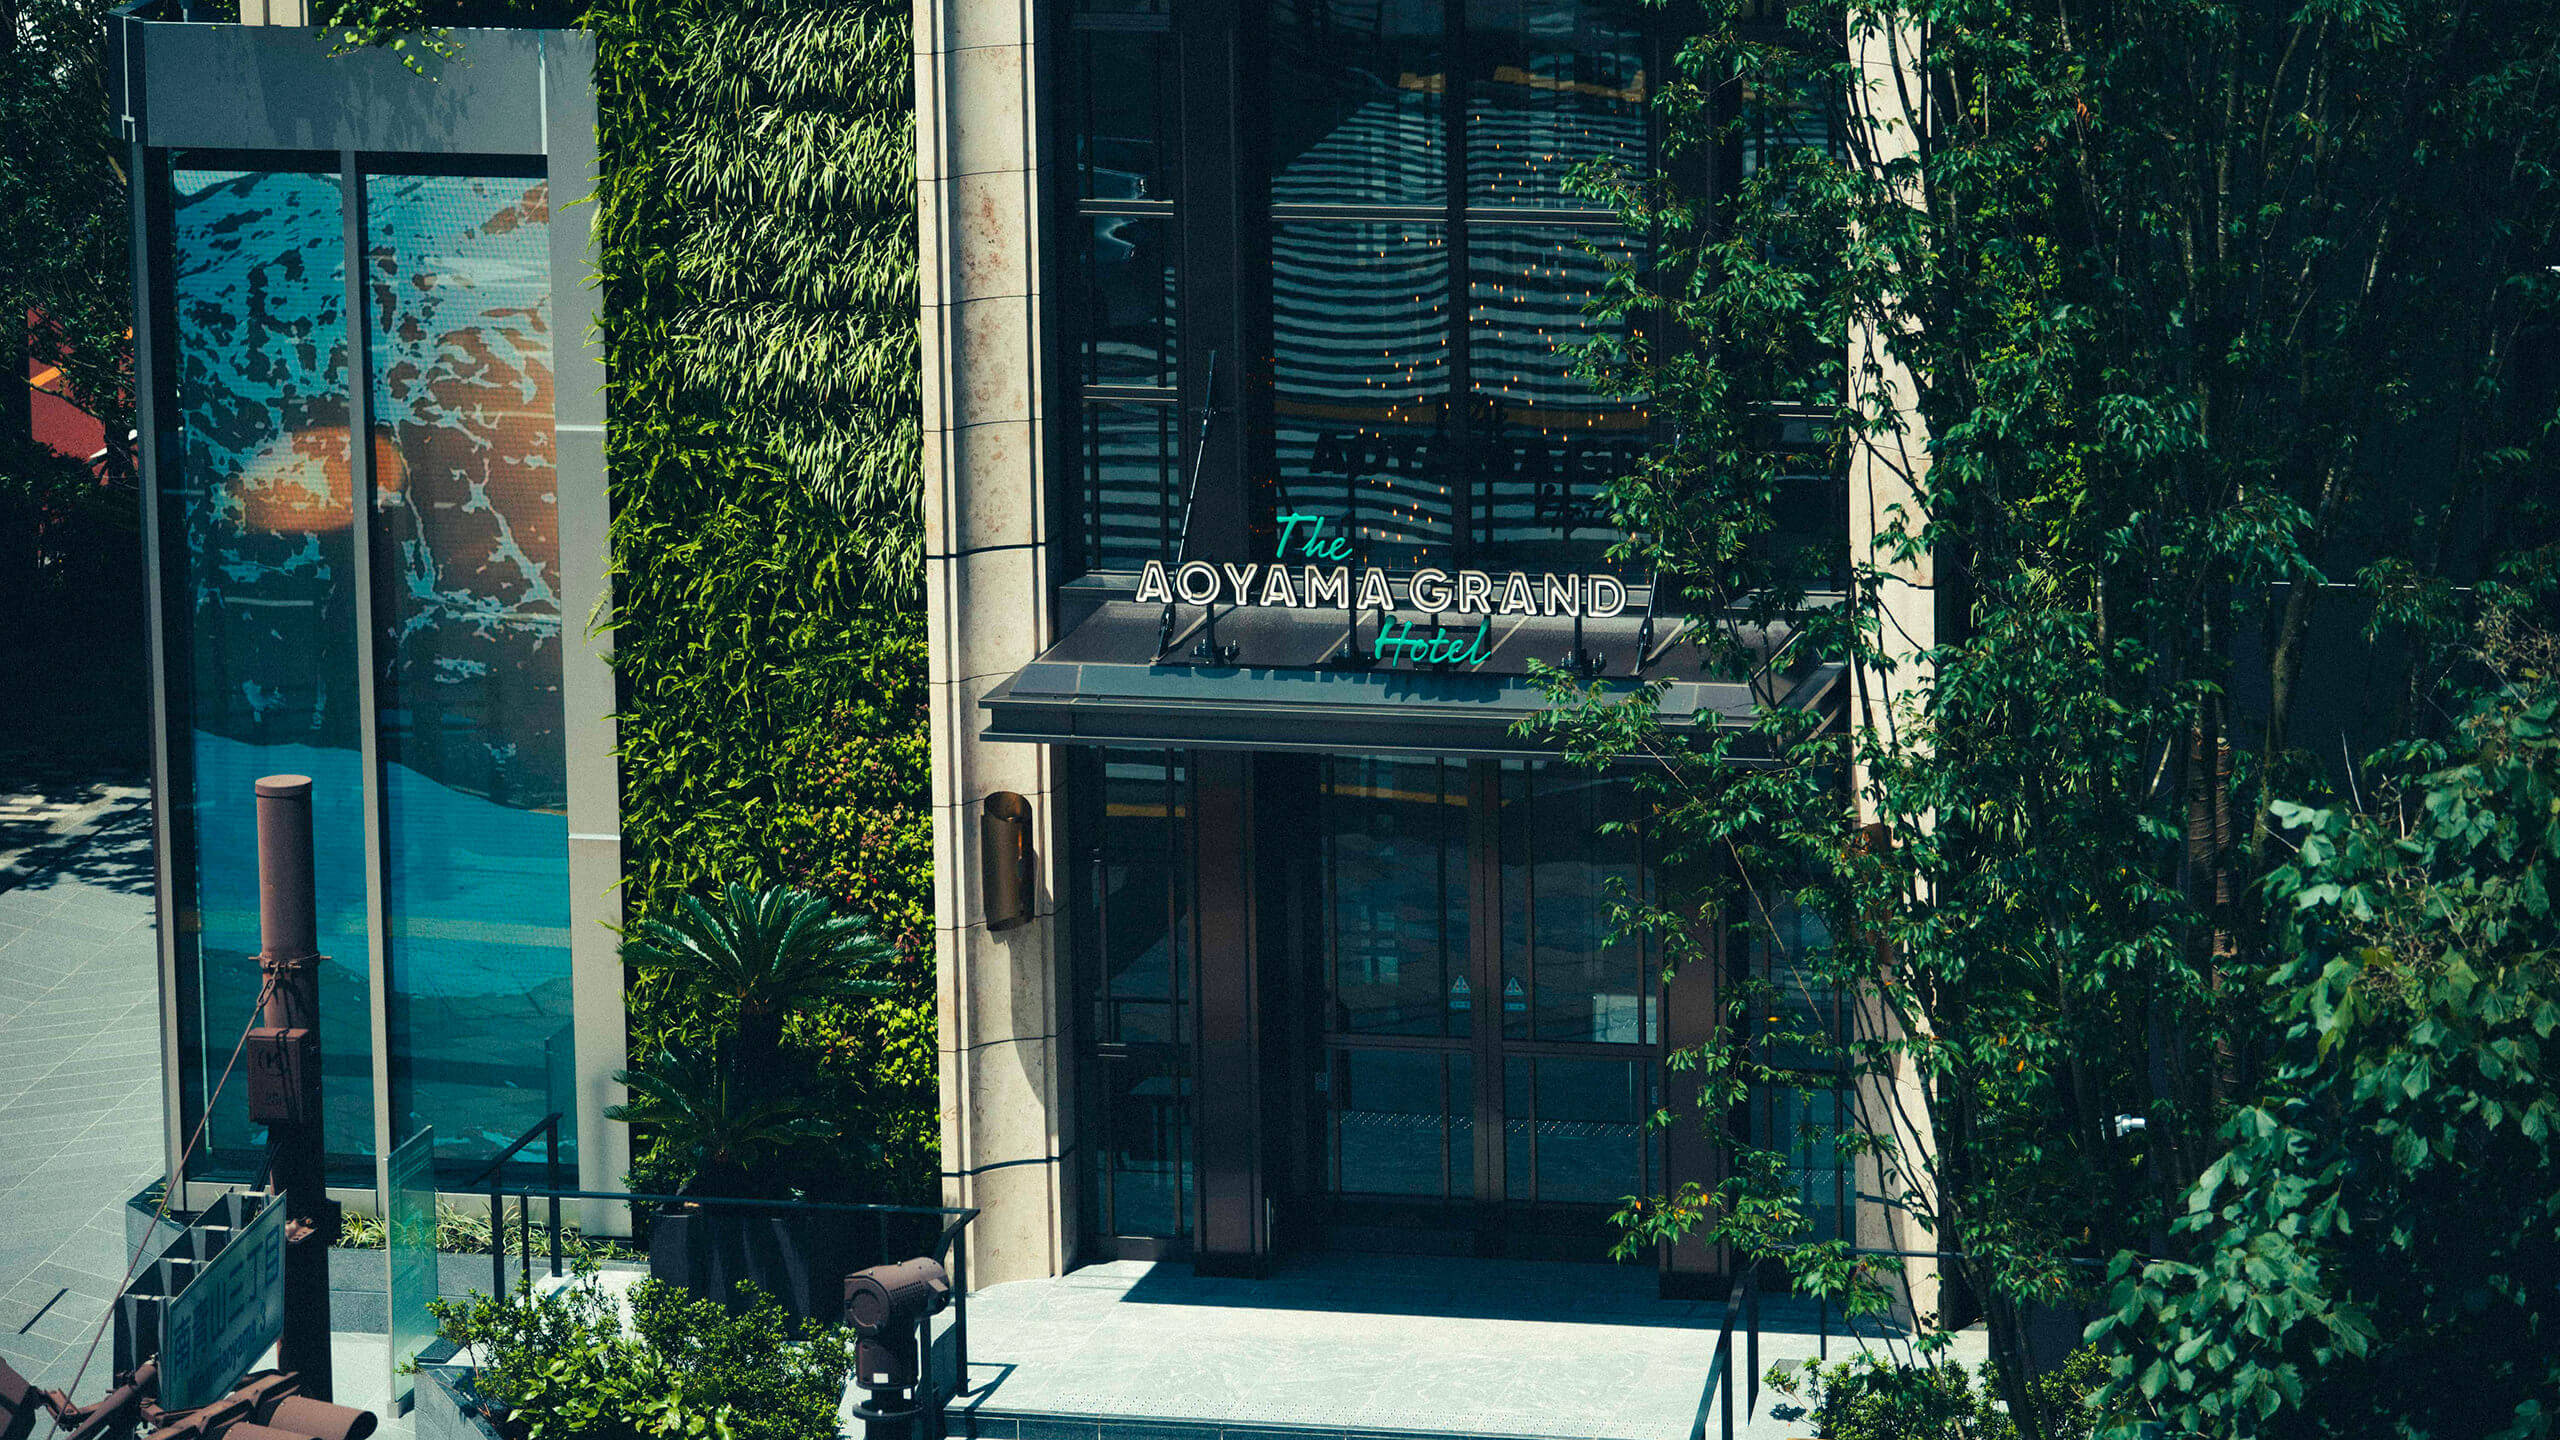 Photo: Exterior of THE AOYAMA GRAND HOTEL